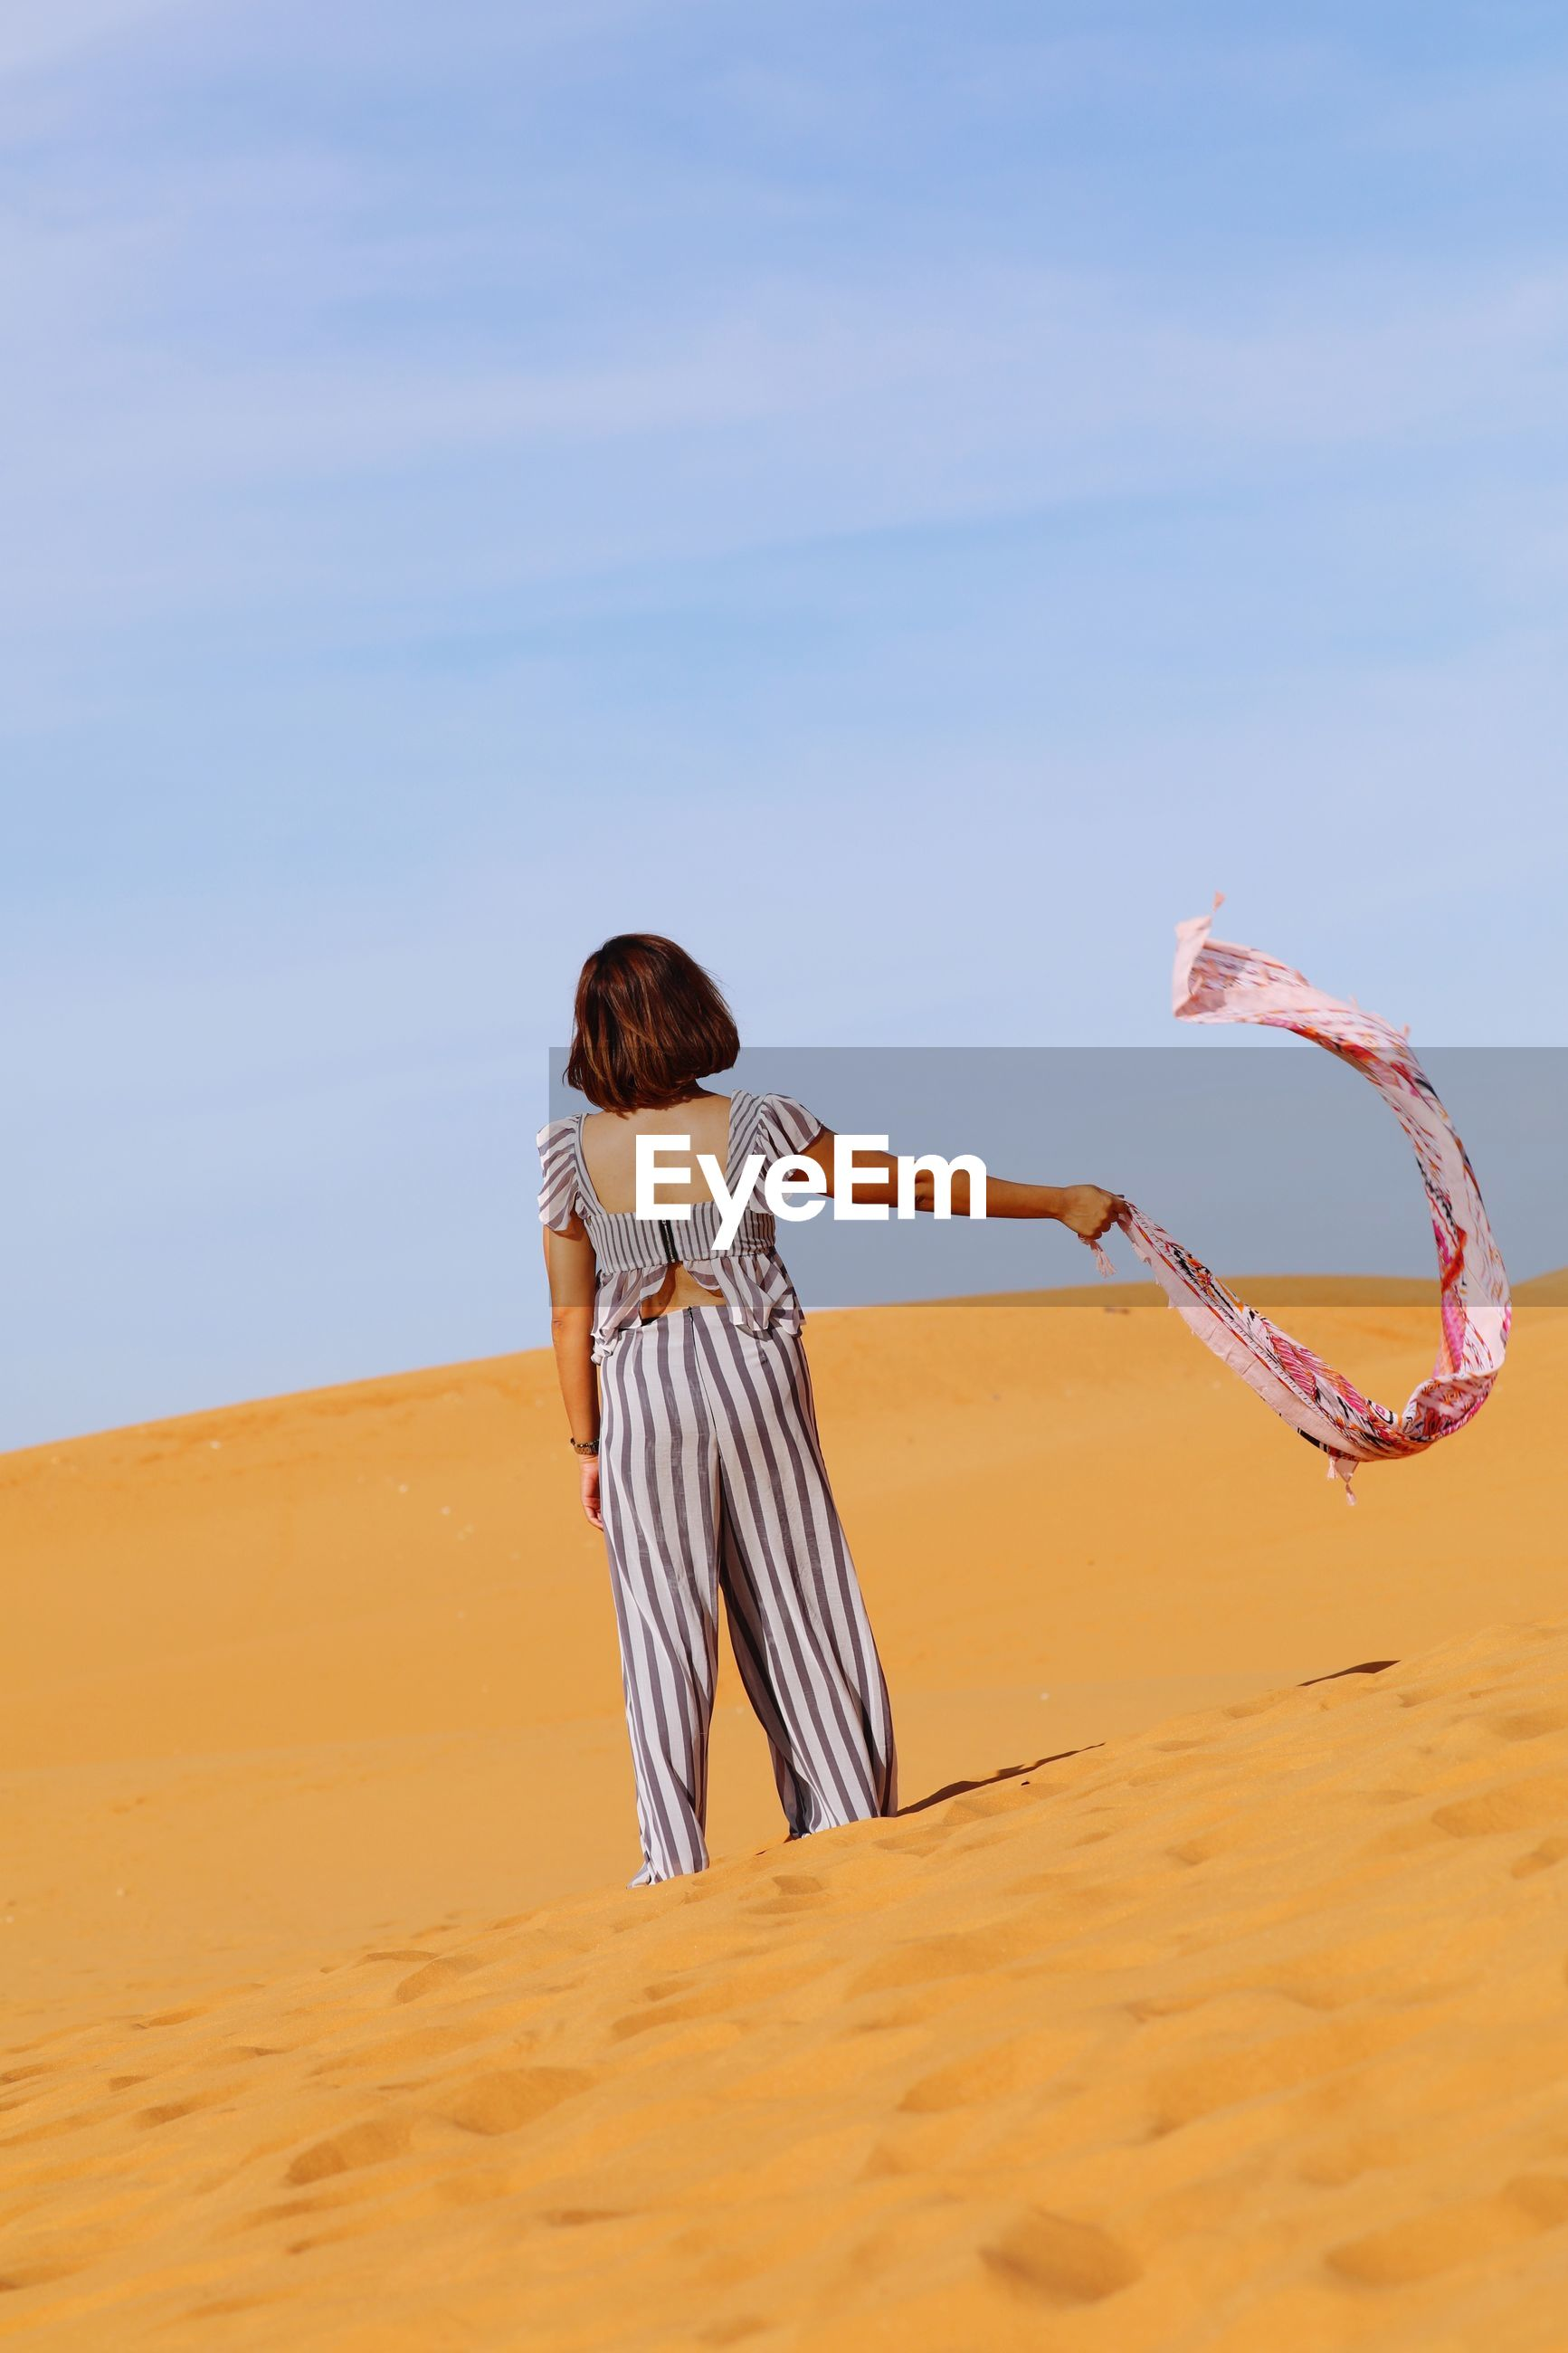 REAR VIEW OF WOMAN WITH UMBRELLA ON BEACH